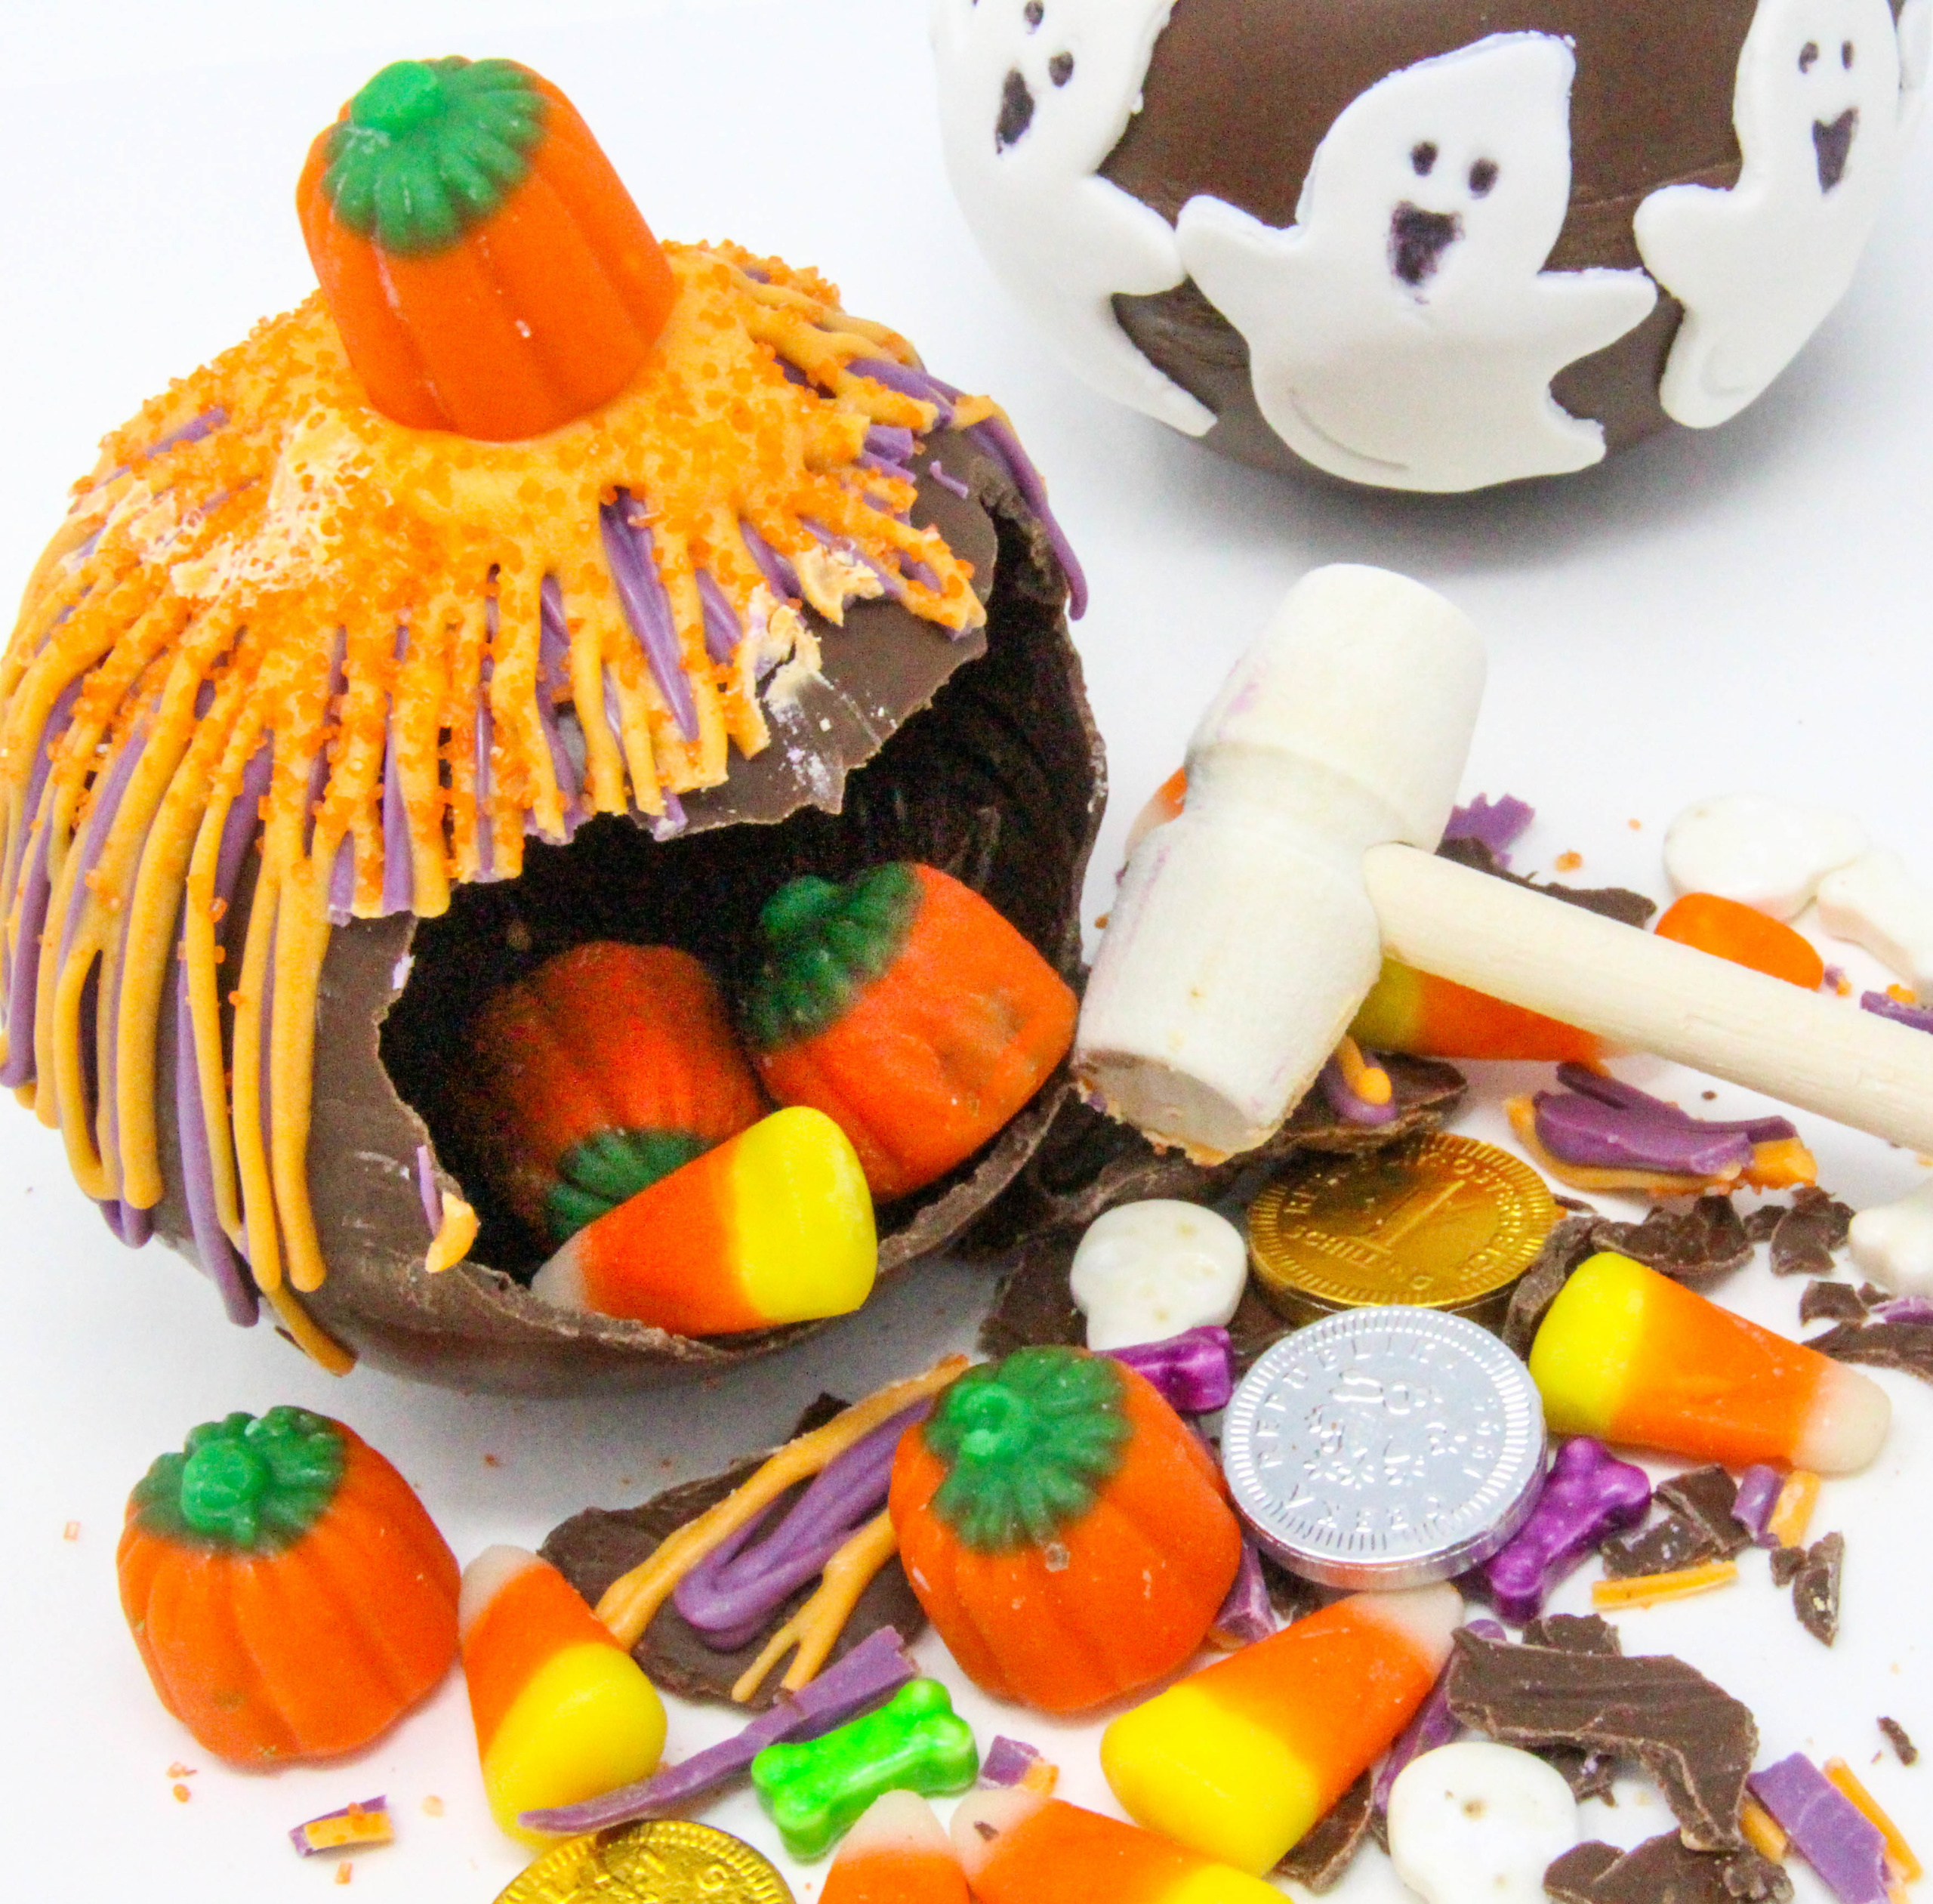 With easy to use candy melts, these fun chocolate smash bombs can be decorated and filled with colors and candies to fit any holiday or theme! Recipe created by Cinnamon & Sugar for Catherine Bruns, author of DESSERT IS THE BOMB.